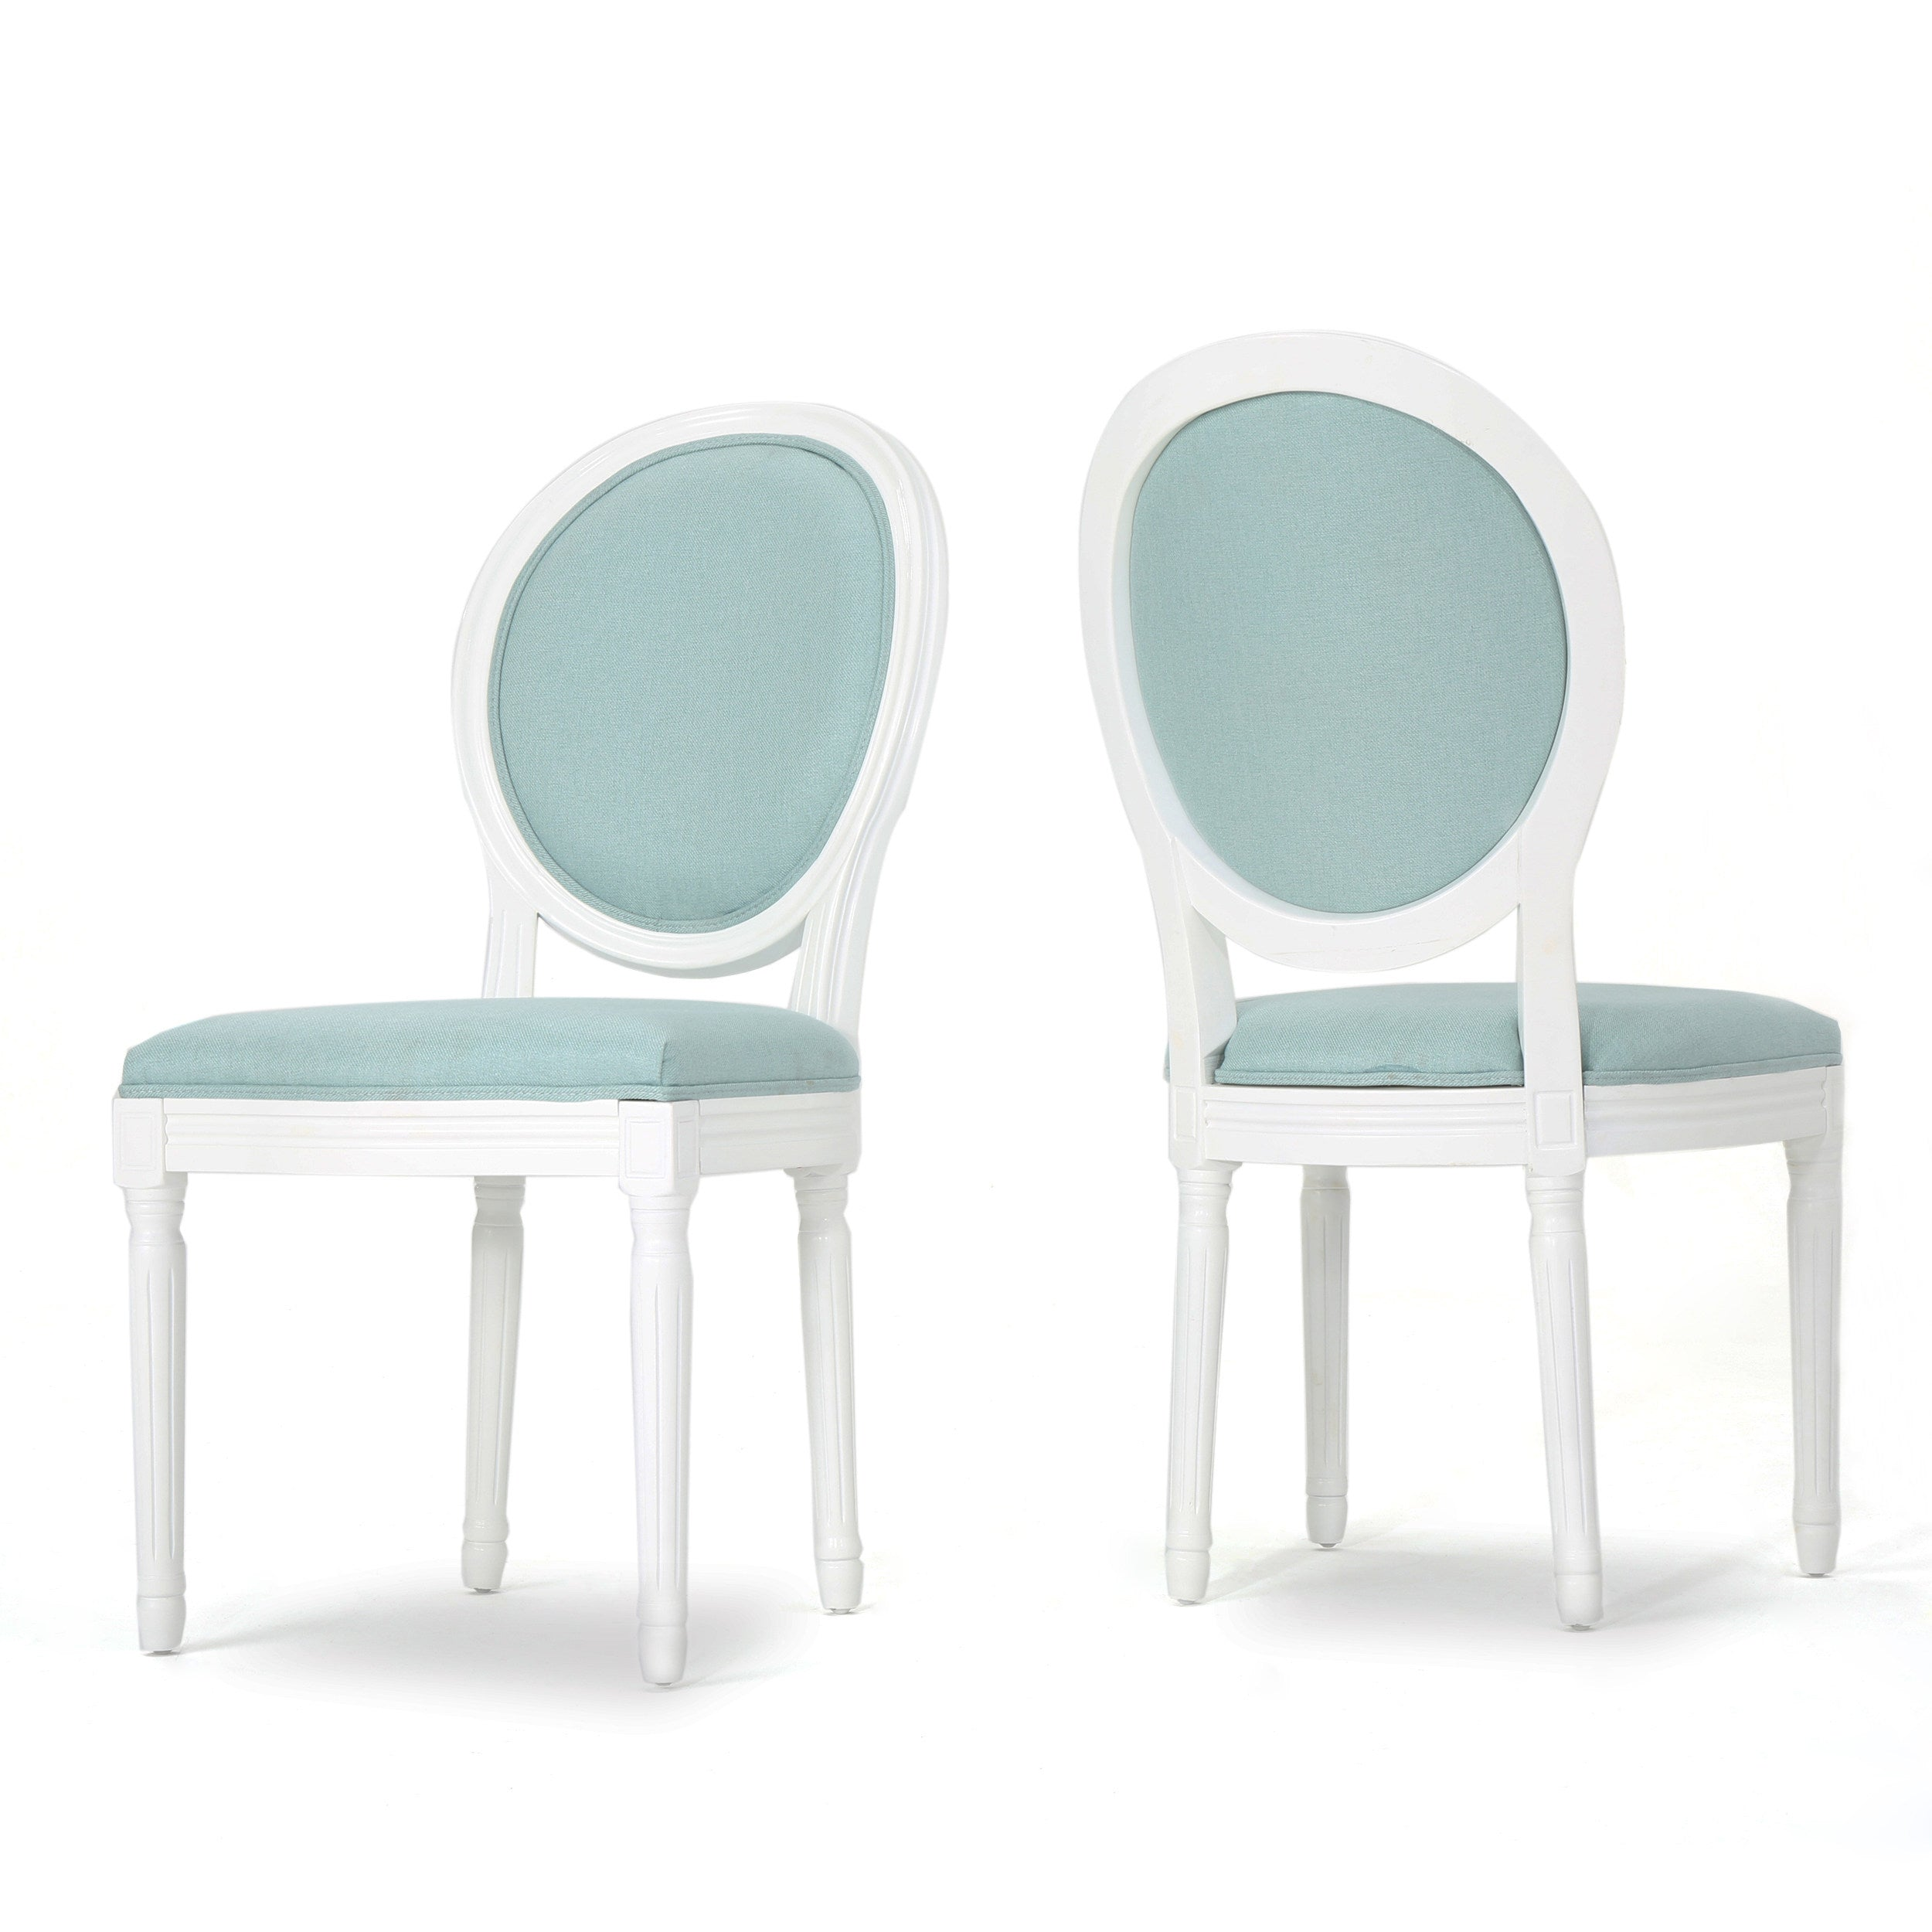 Adelise Traditional Light Blue Upholstered Fabric Dining Chairs Set of 2